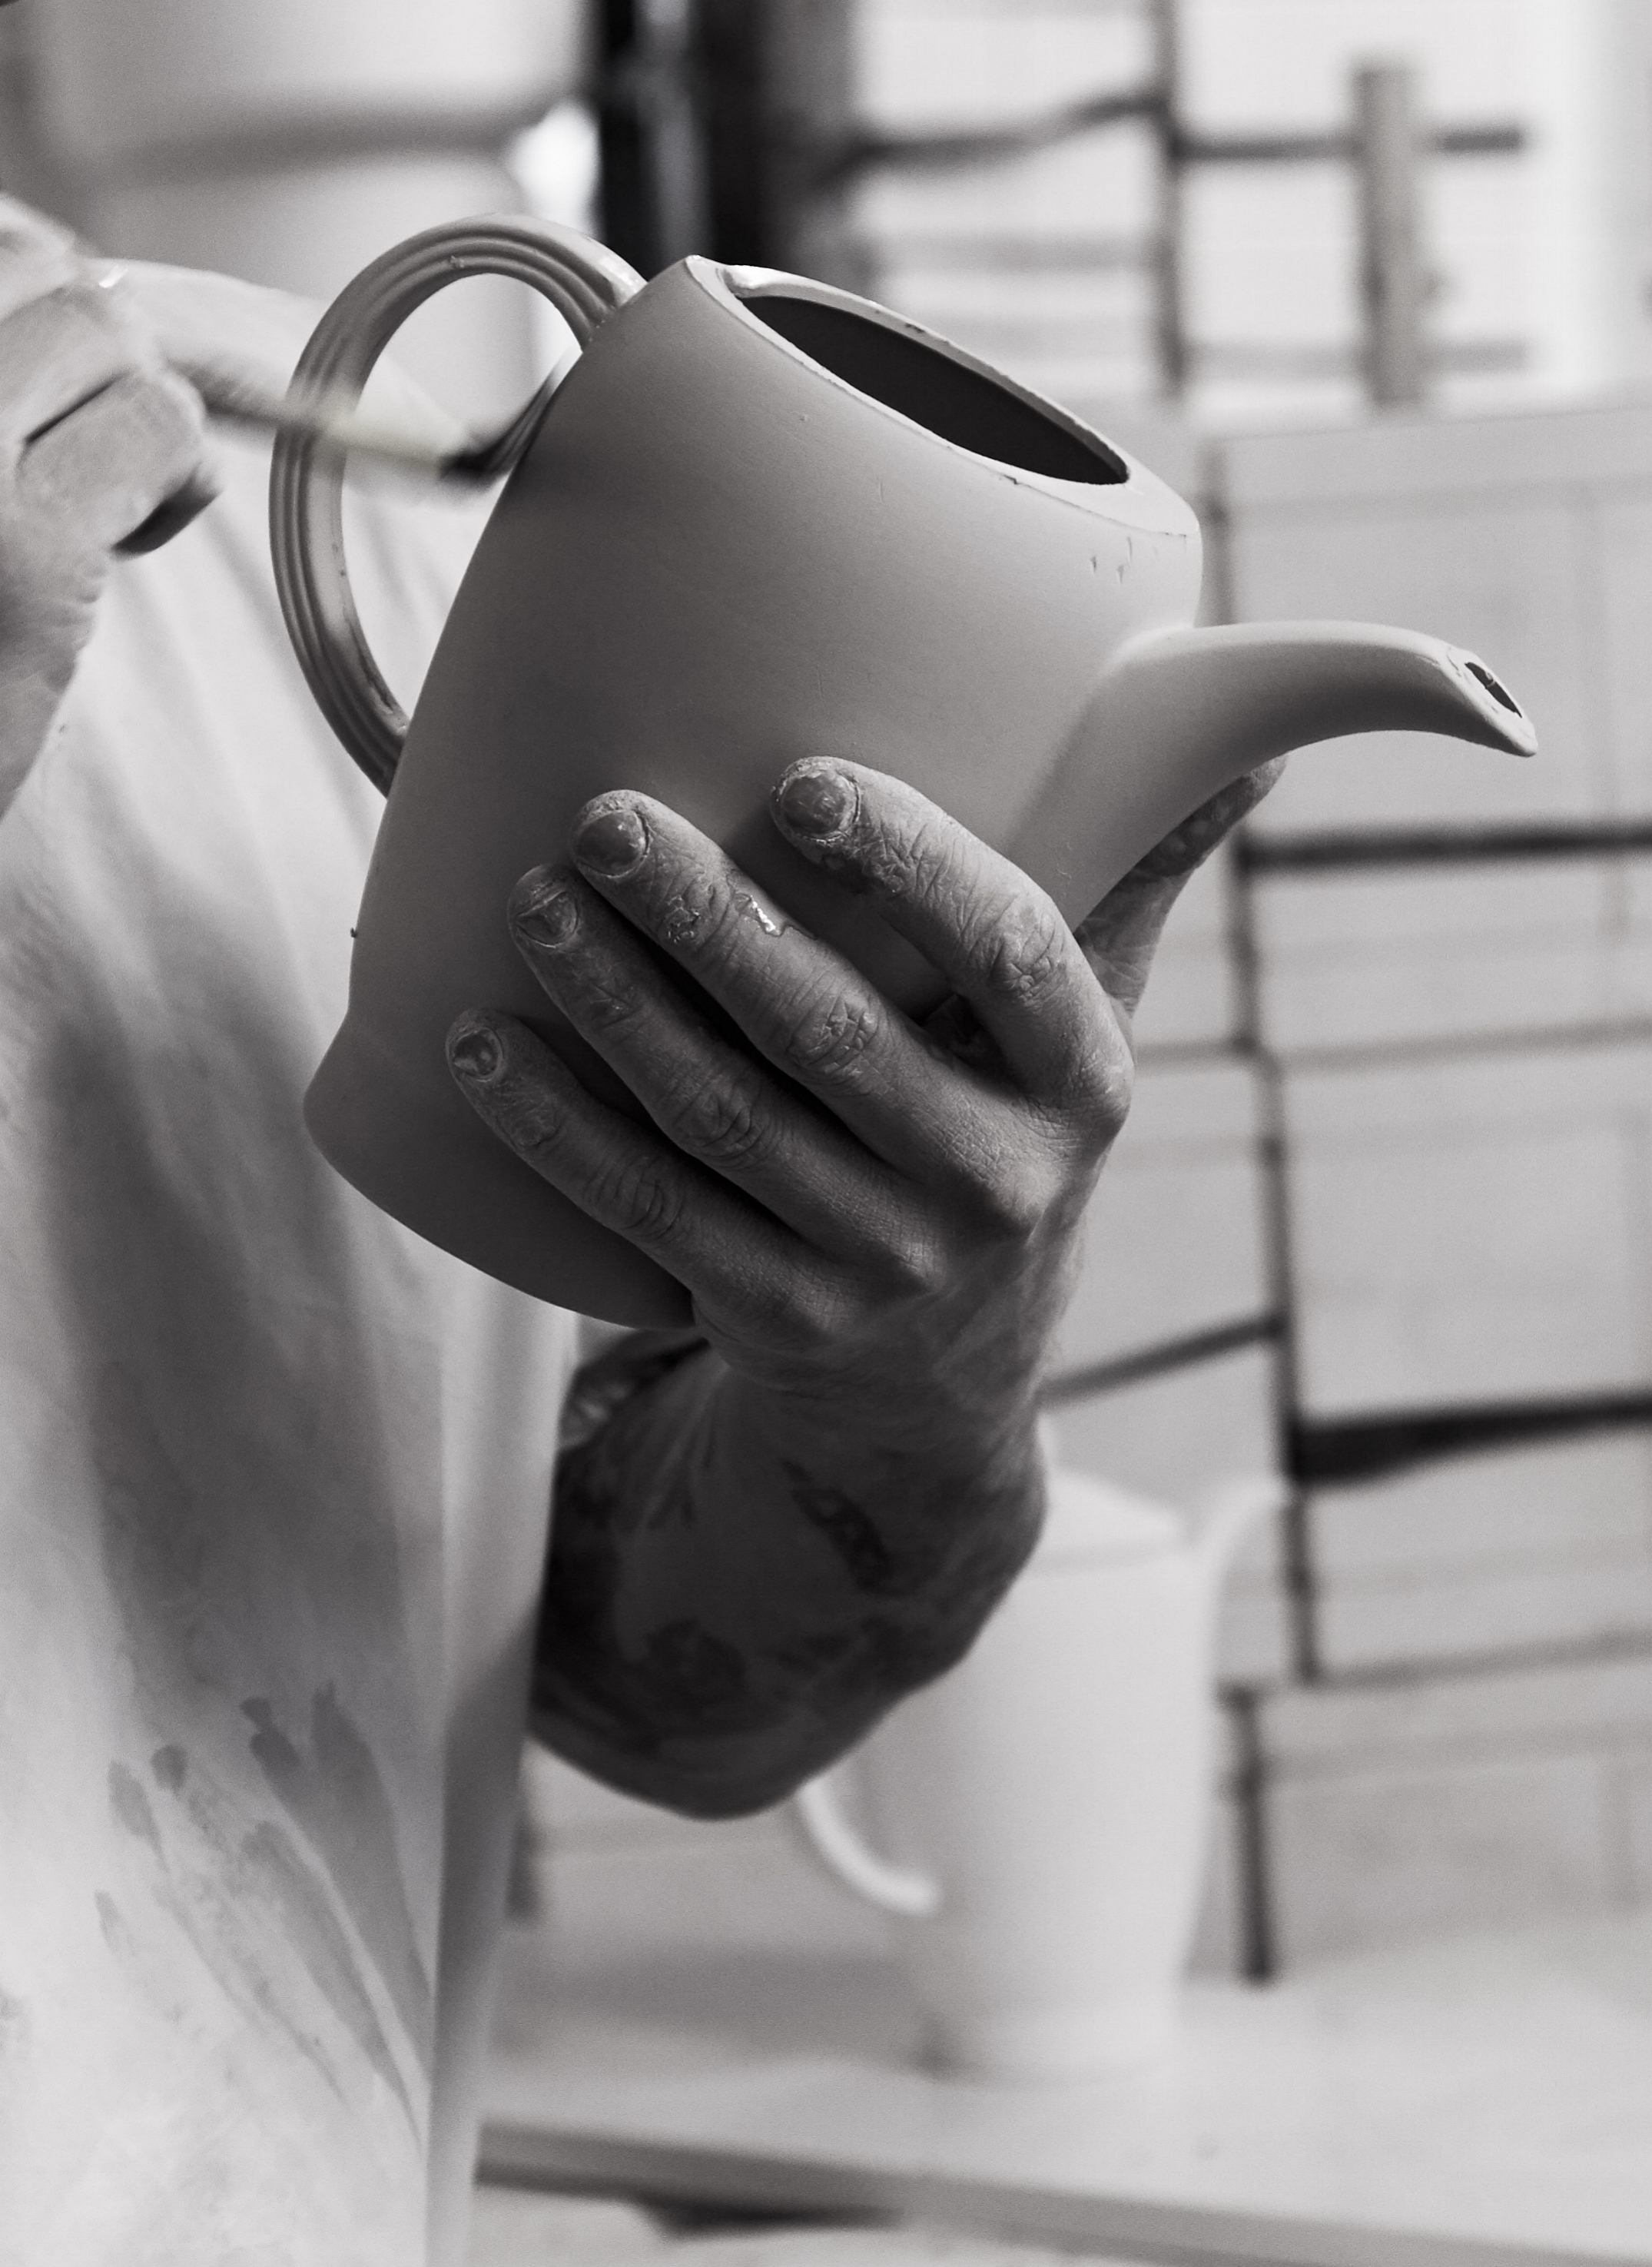 Refining the teapot surface.